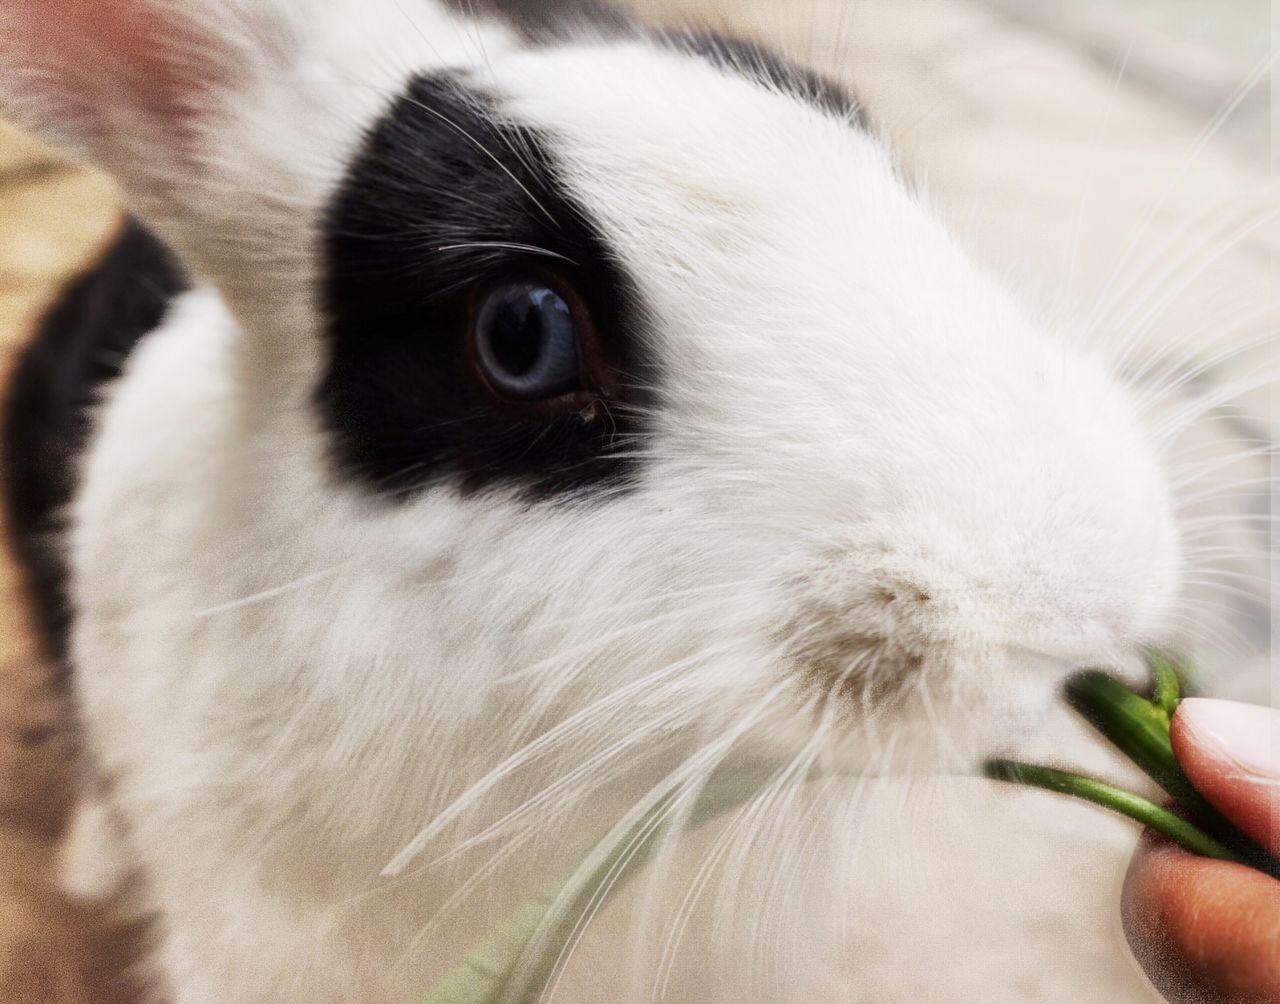 Black eye rabbit One Animal Human Hand Animal Themes Domestic Animals Real People One Person Mammal Pets Feeding  Human Body Part Unrecognizable Person Personal Perspective Human Finger Holding Lifestyles Close-up Food Indoors  Day Popular Animals In The Wild Animal Photography